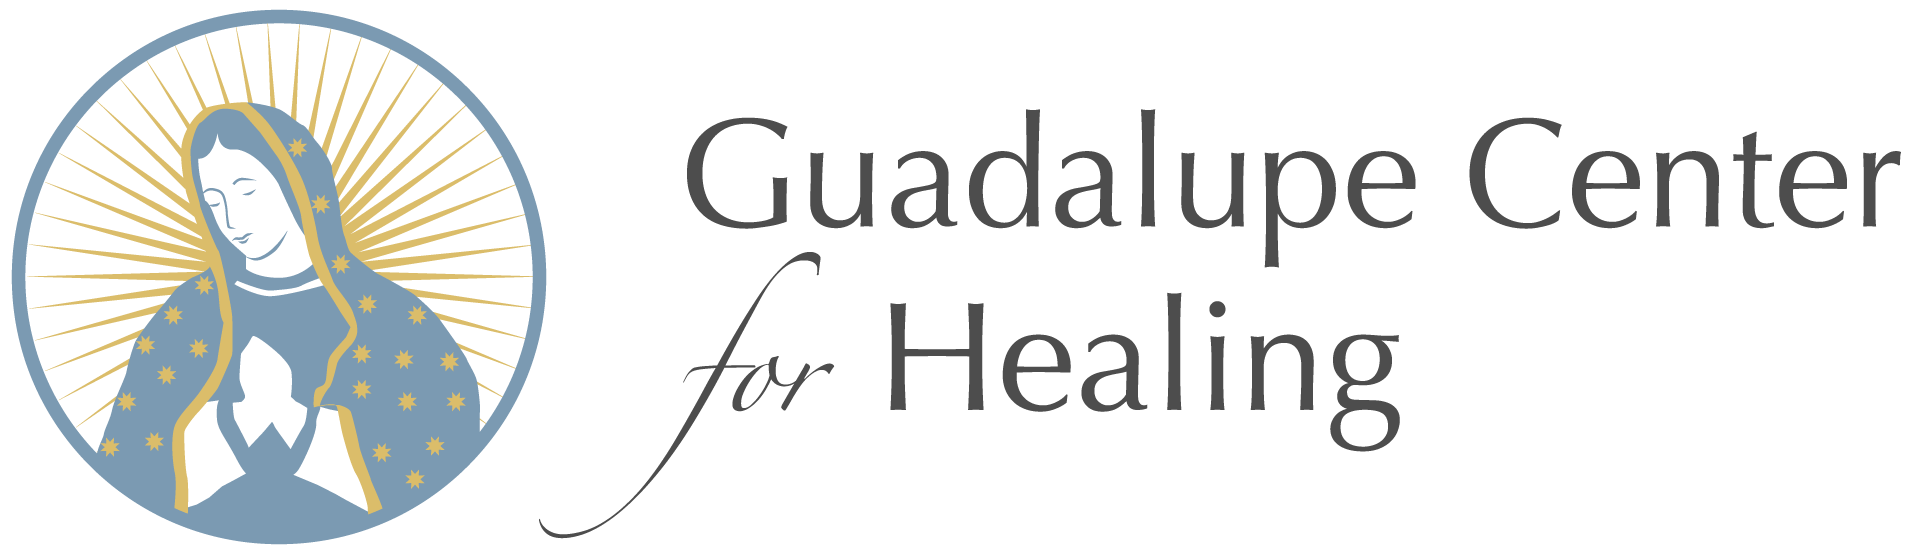 Guadalupe Center for Healing